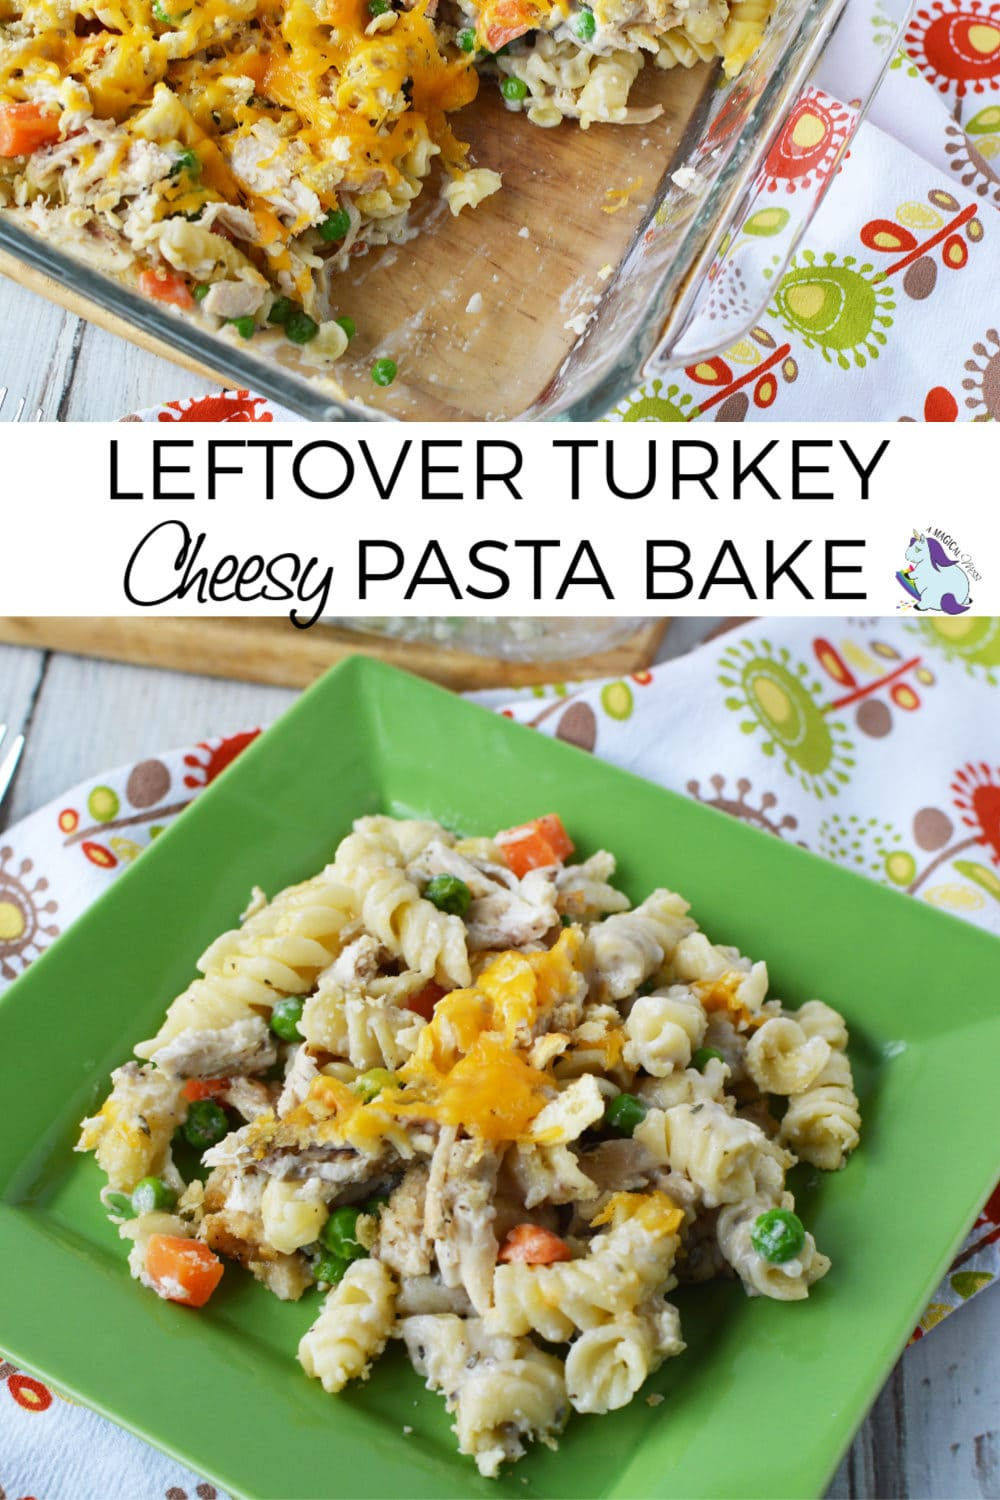 Leftover Turkey Recipe: Turkey Pasta Bake Recipe with Veggies and Cheese